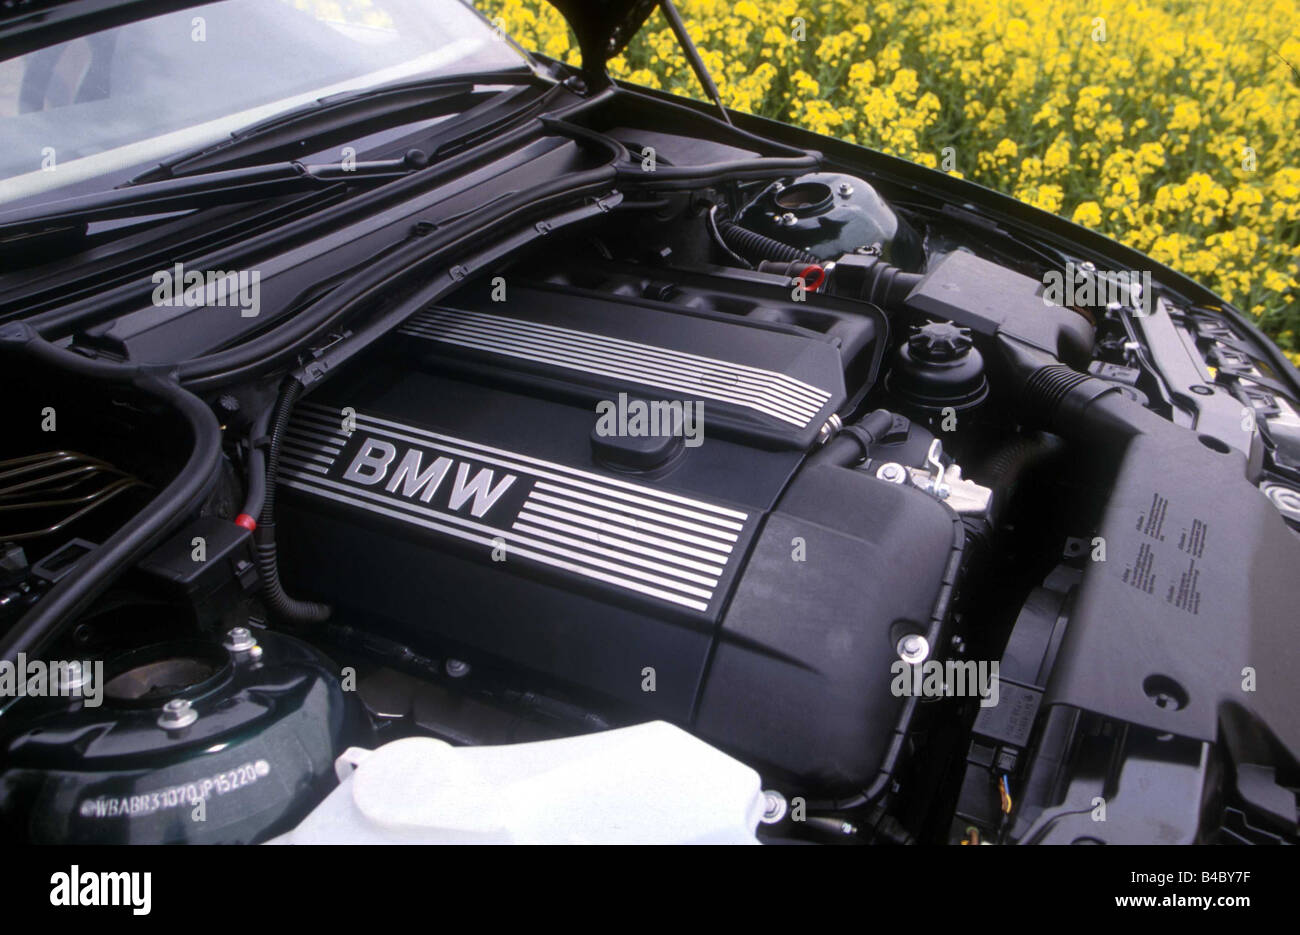 hight resolution of car bmw 323i convertible model year 2000 black view in engine compartment engine technique accessory accessories